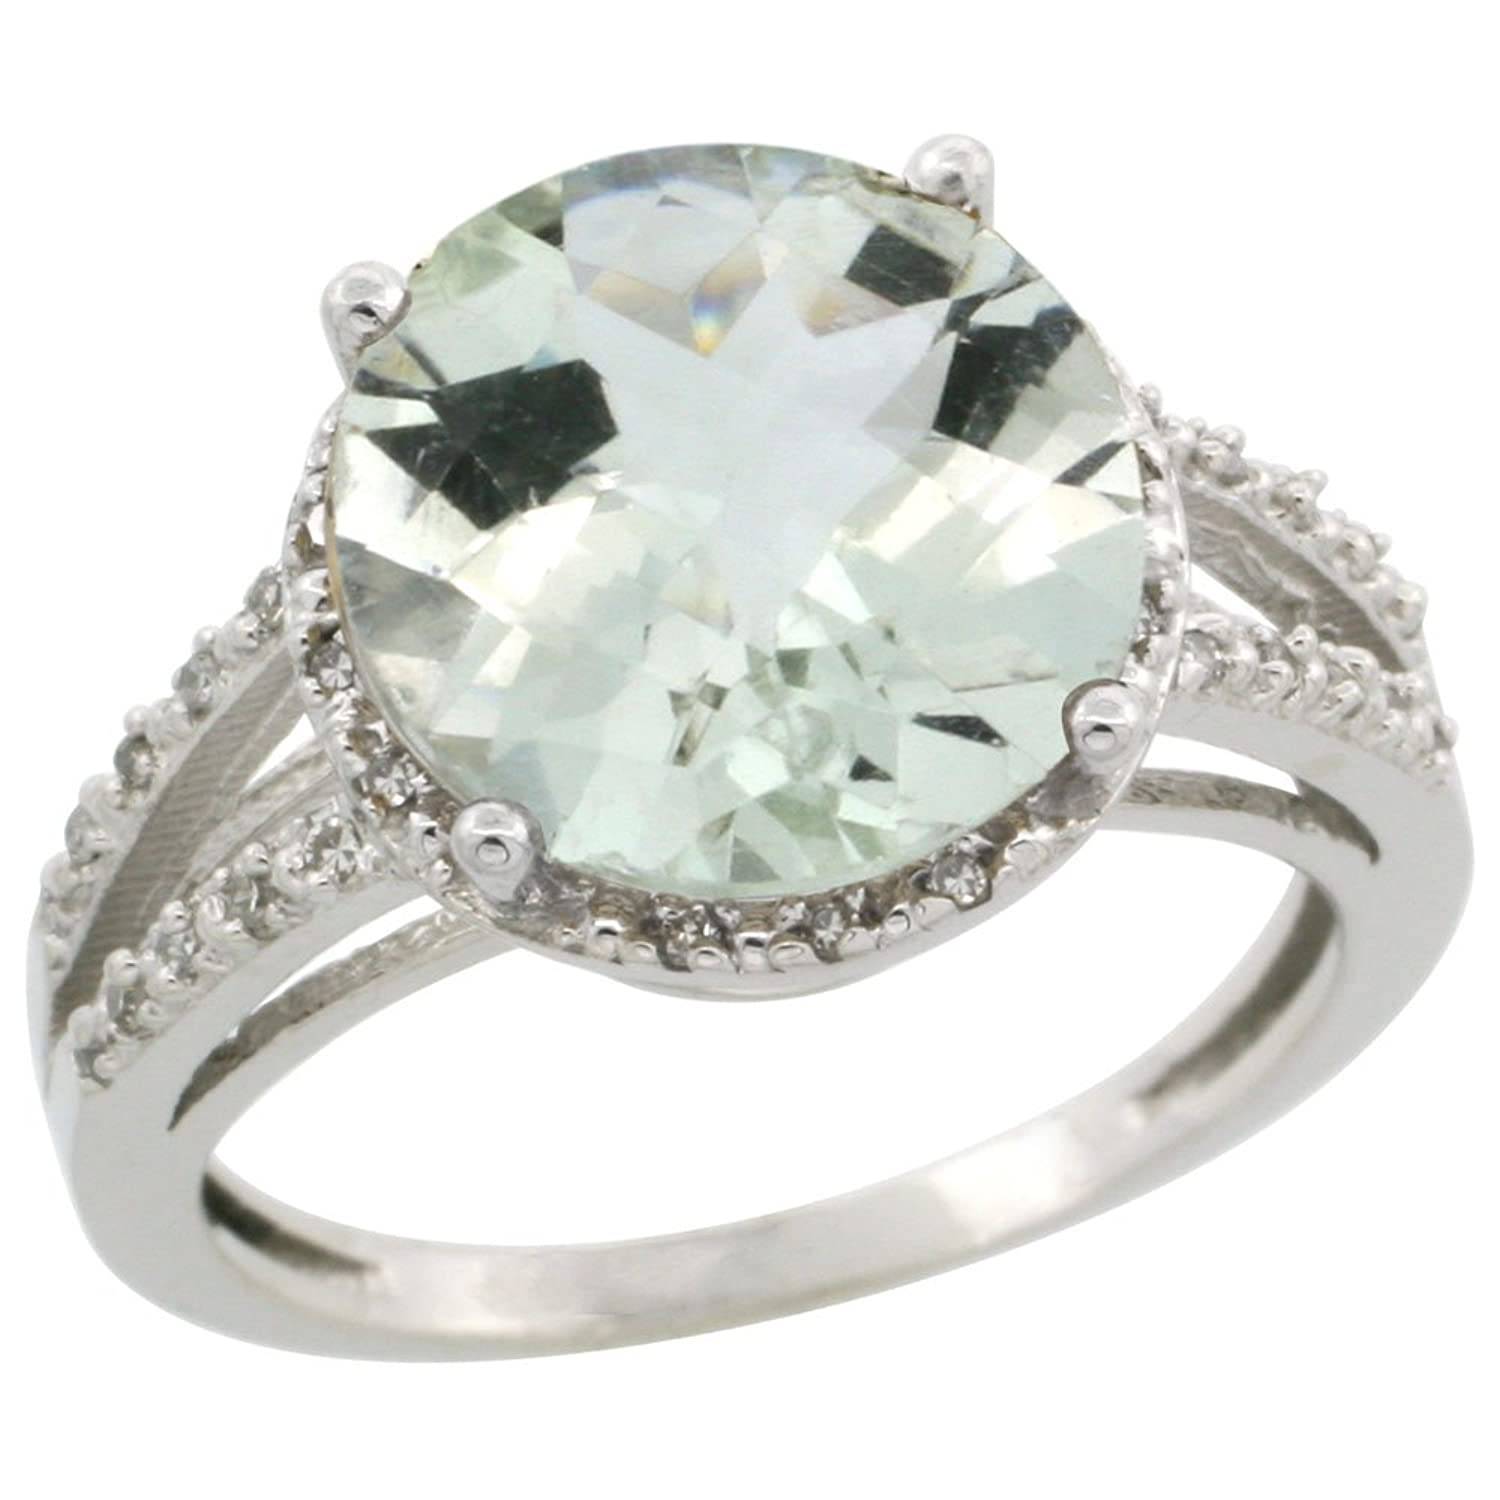 10K White Gold Diamond Natural Green Amethyst Ring Round 11mm, sizes 5-10